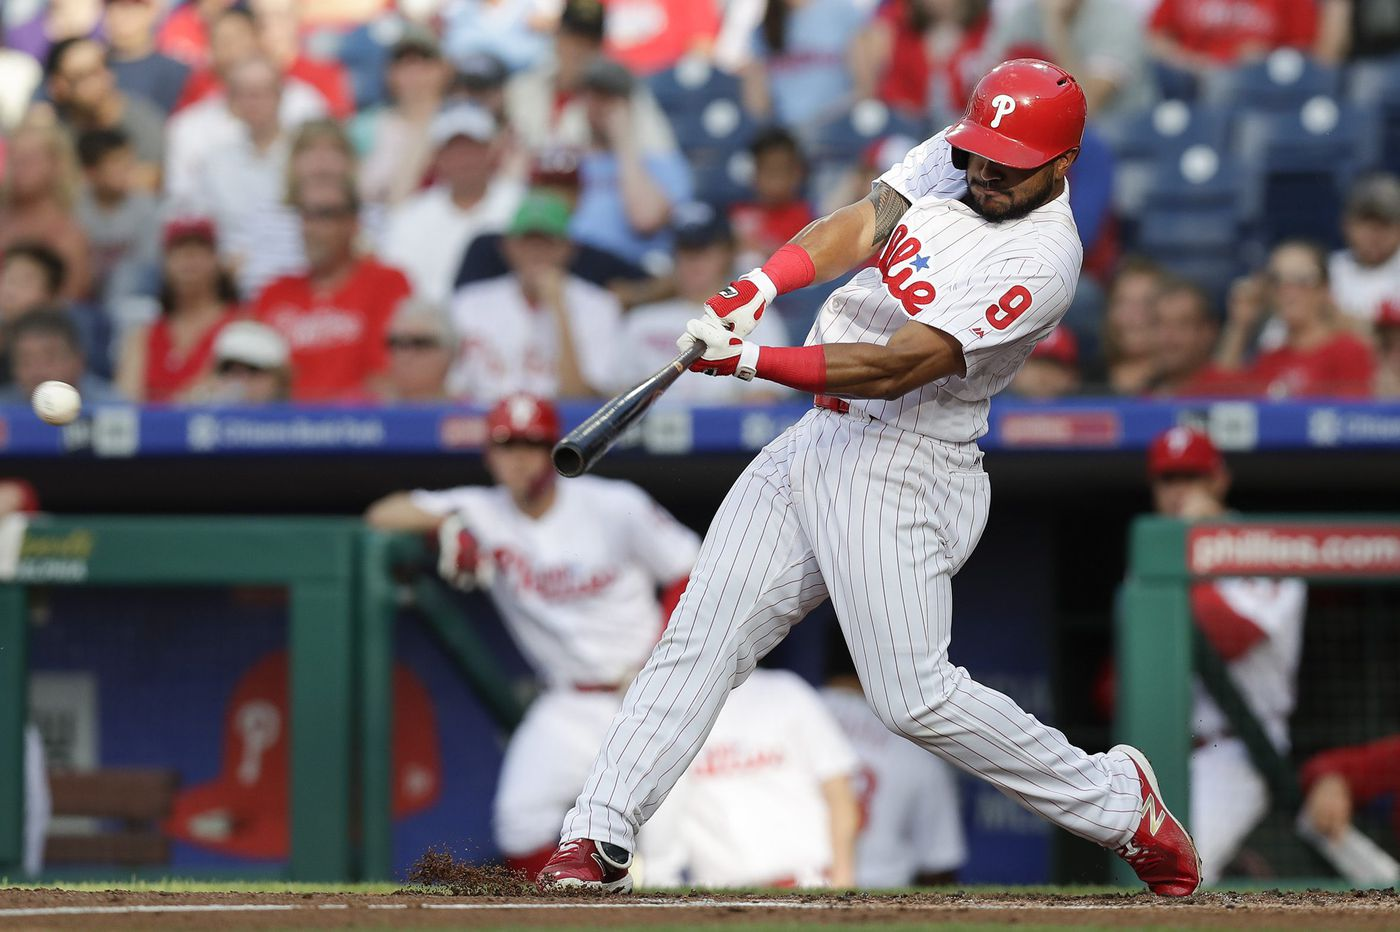 With Aaron Altherr back in triple A, Phillies' focus turns to bolstering bench